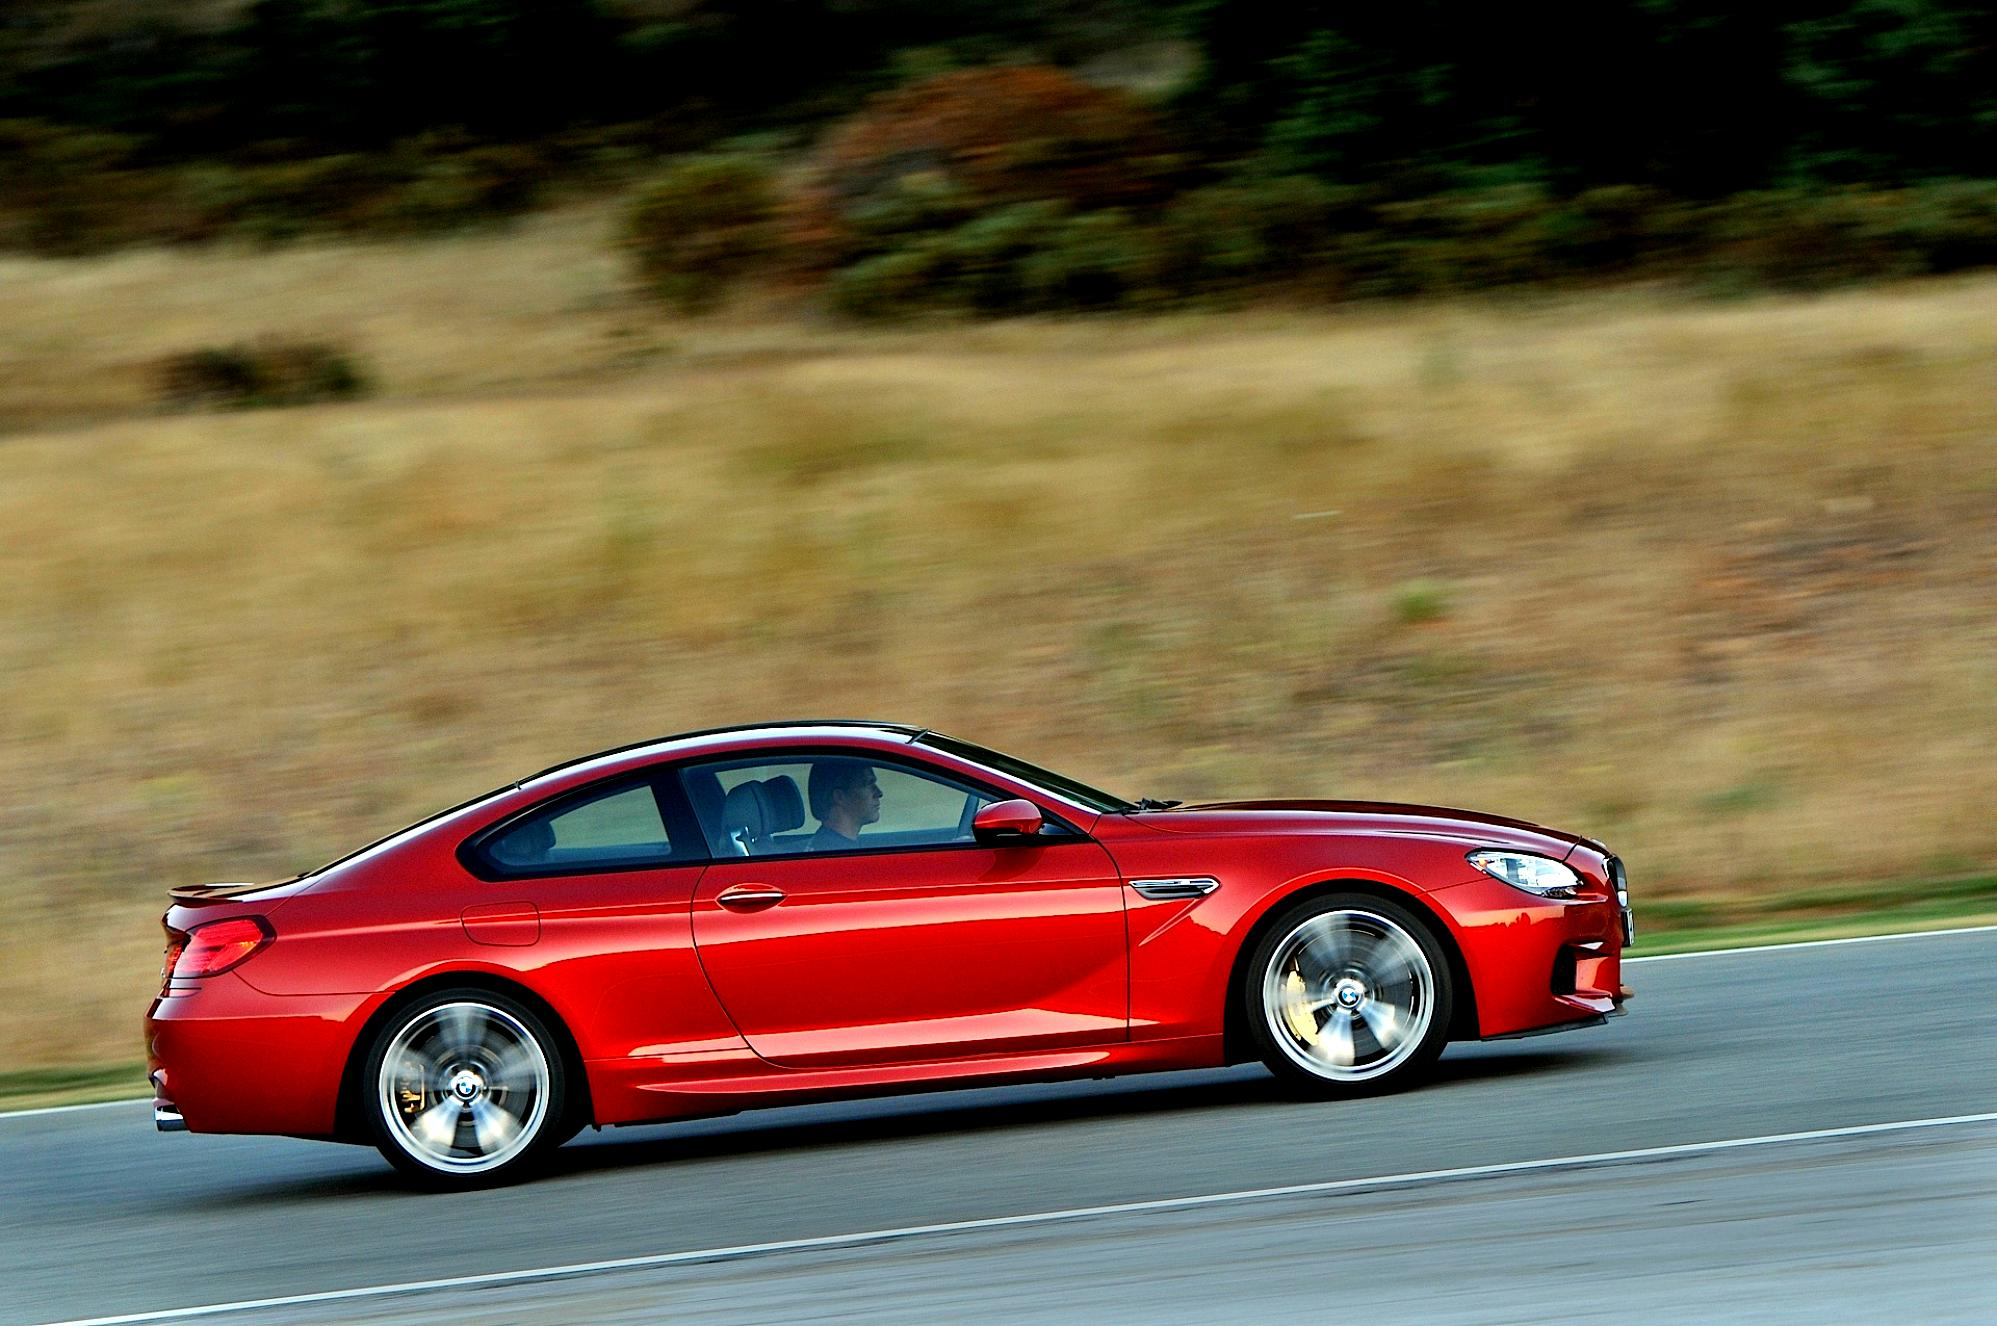 BMW M6 Coupe F13 2012 #55